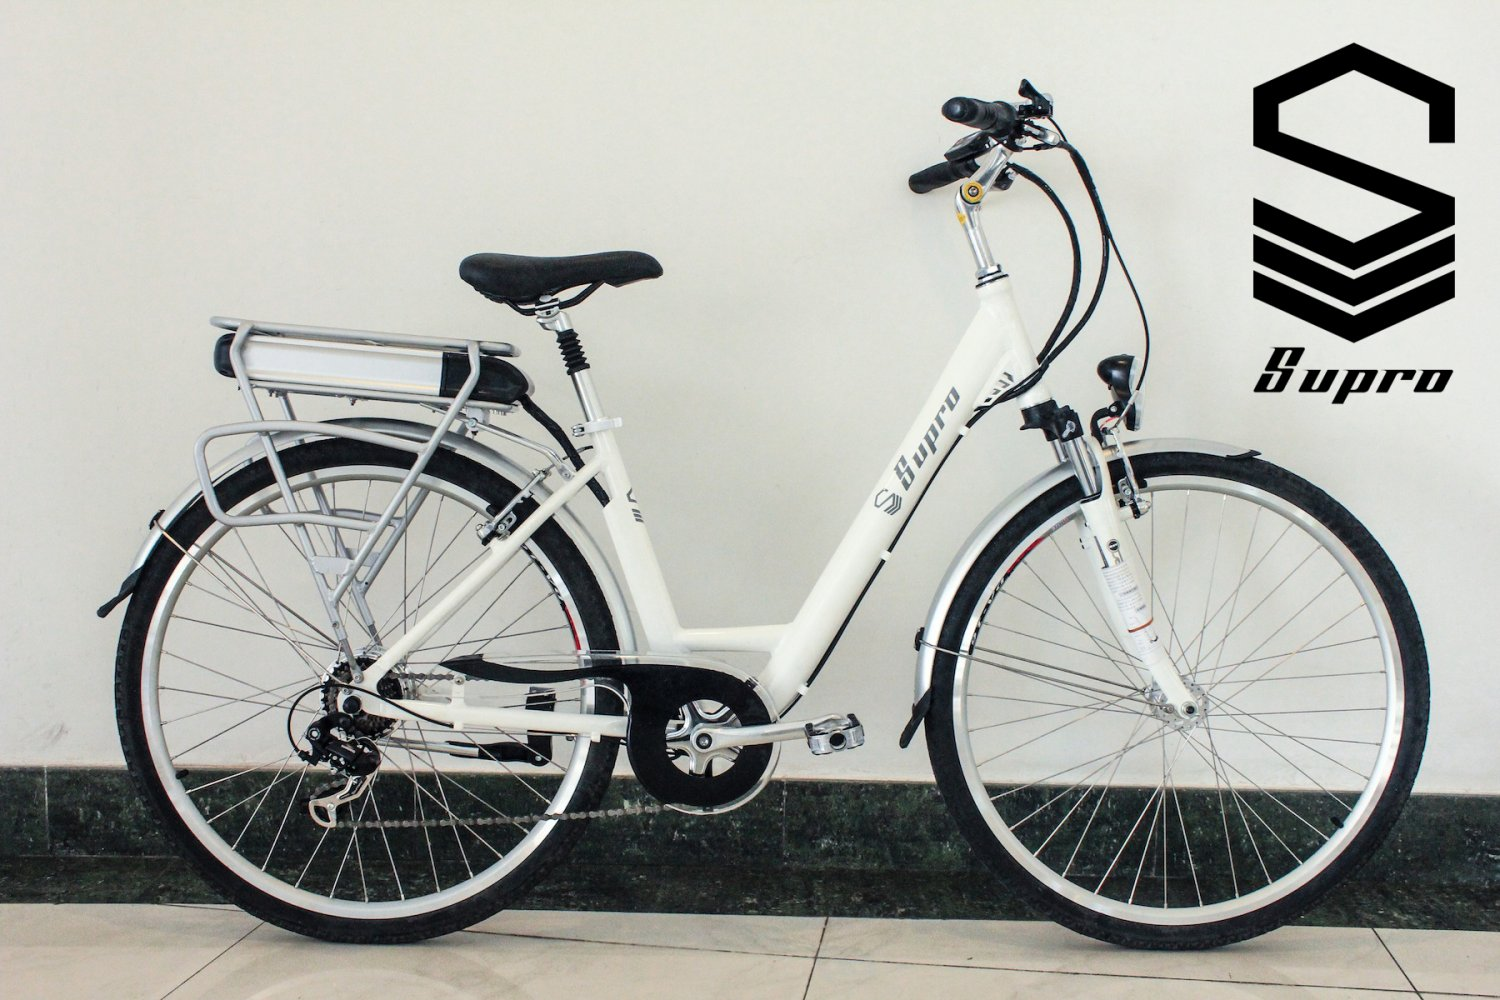 Supro Electric Bicycle Electric Bike - Freedom - Quality, Stylish, Eco Friendly!